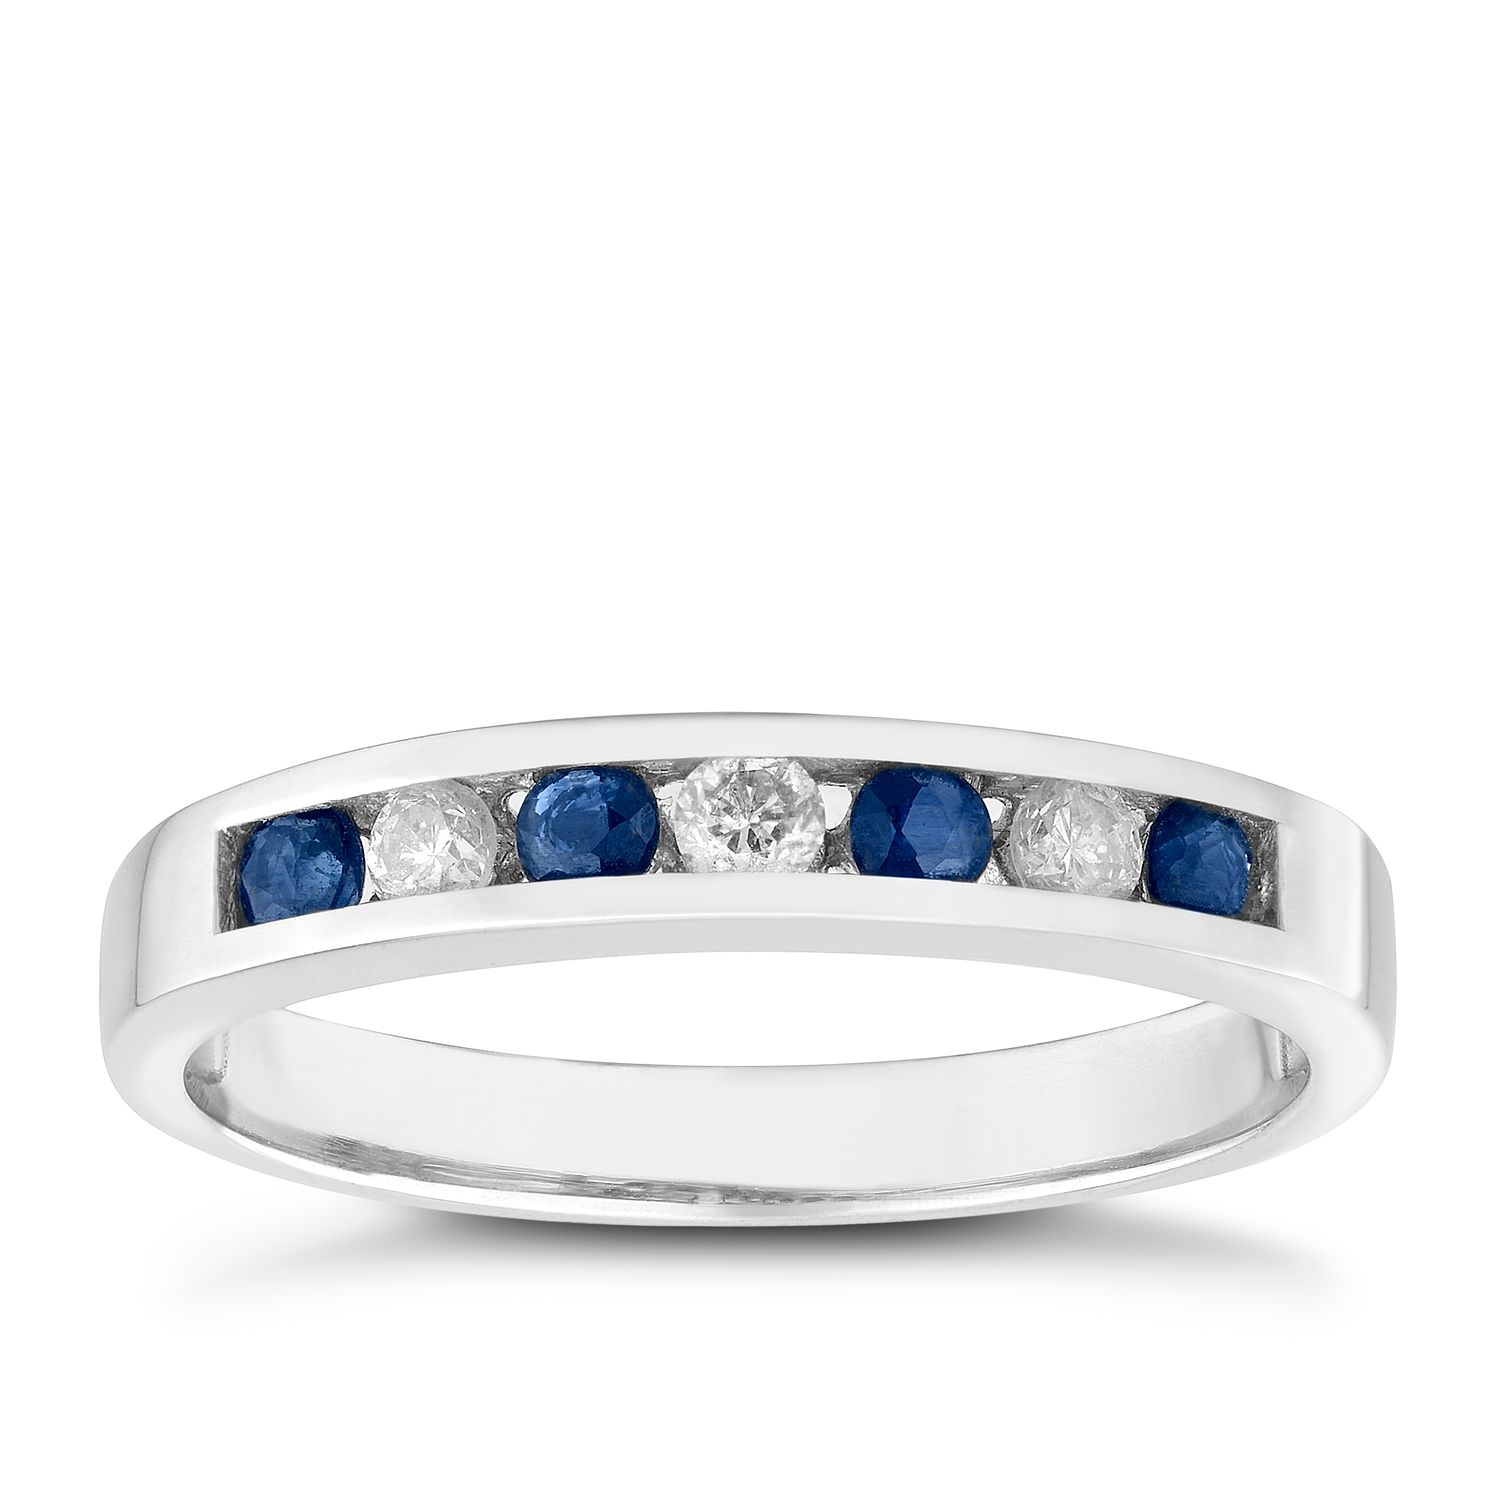 eternity bands faceted august brooks band jewelry above blue umba sapphire shop designers lola